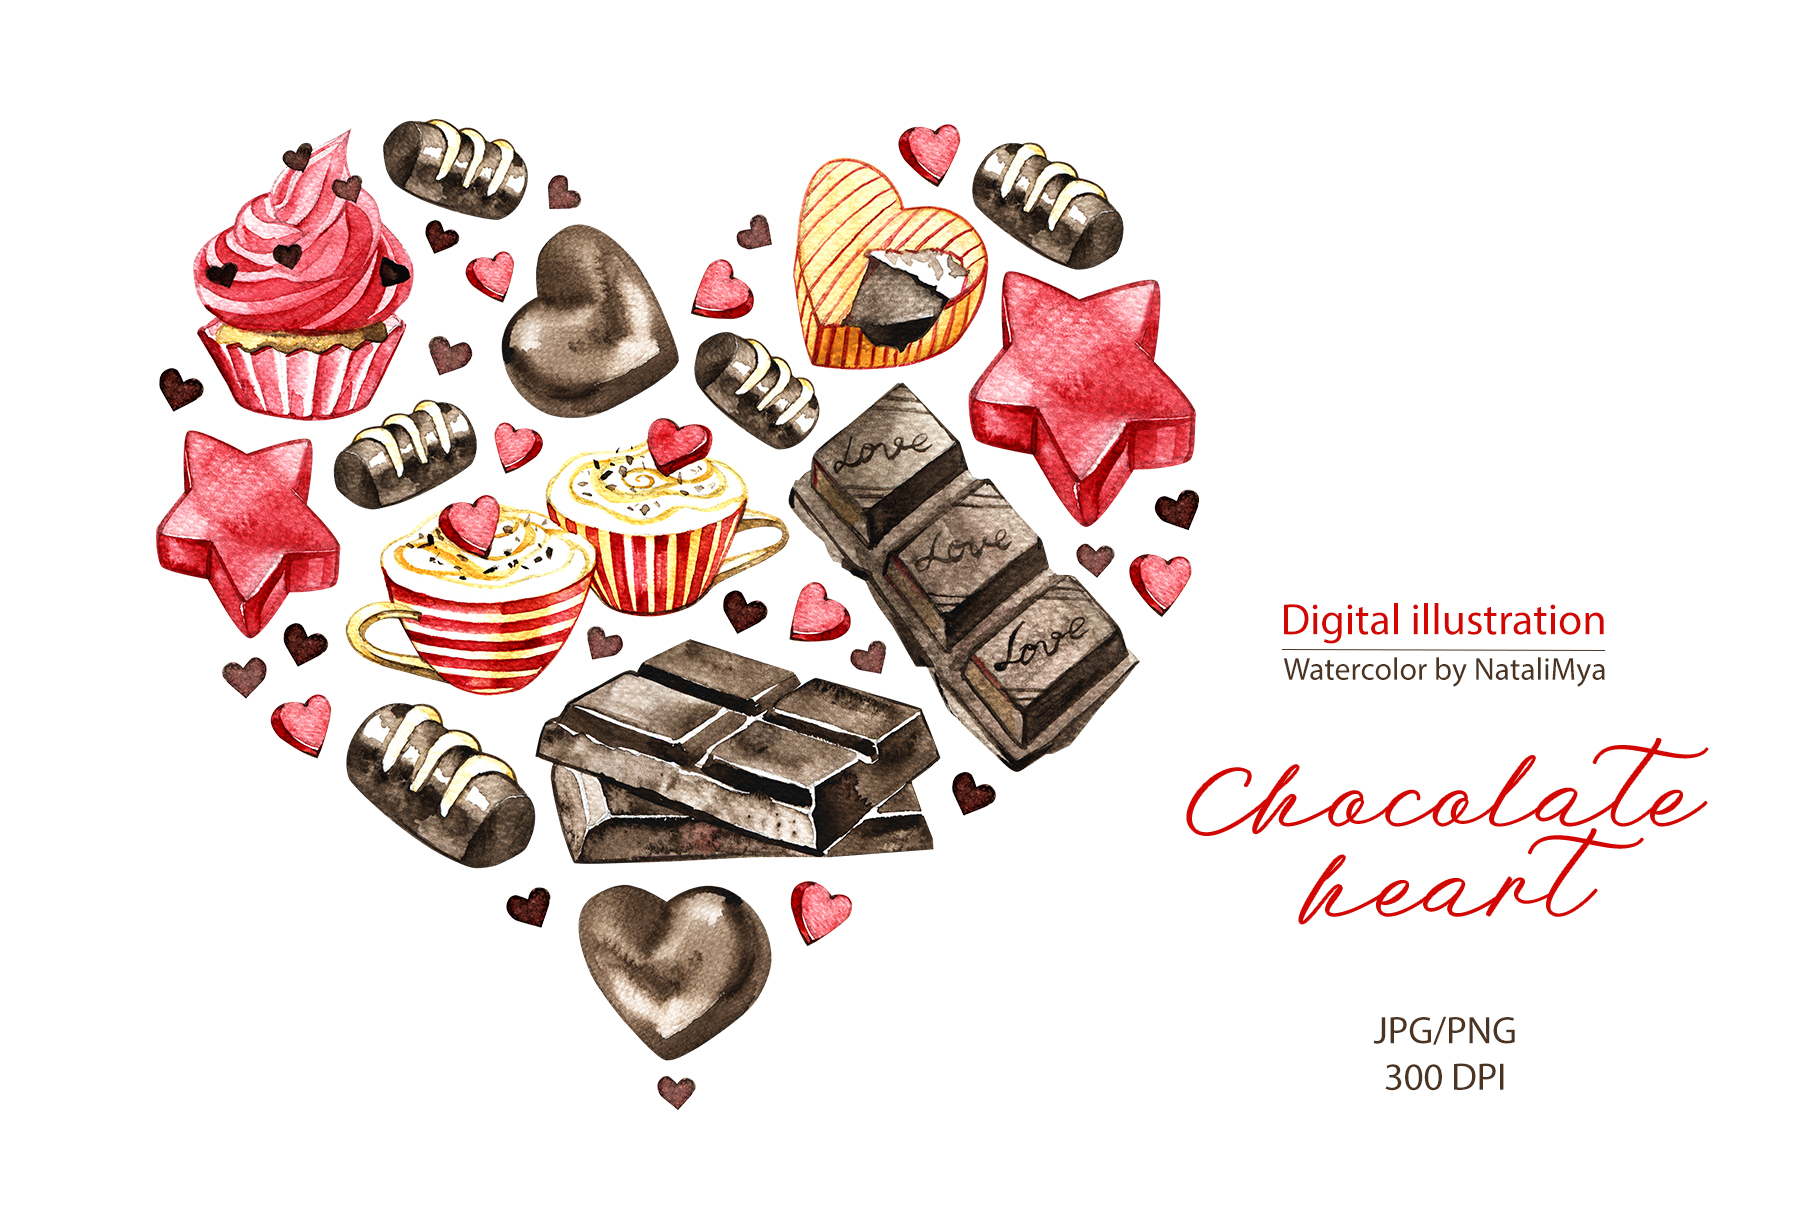 Download Free Watercolor Chocolate Heart Clipart Graphic By Natalimyastore Creative Fabrica for Cricut Explore, Silhouette and other cutting machines.